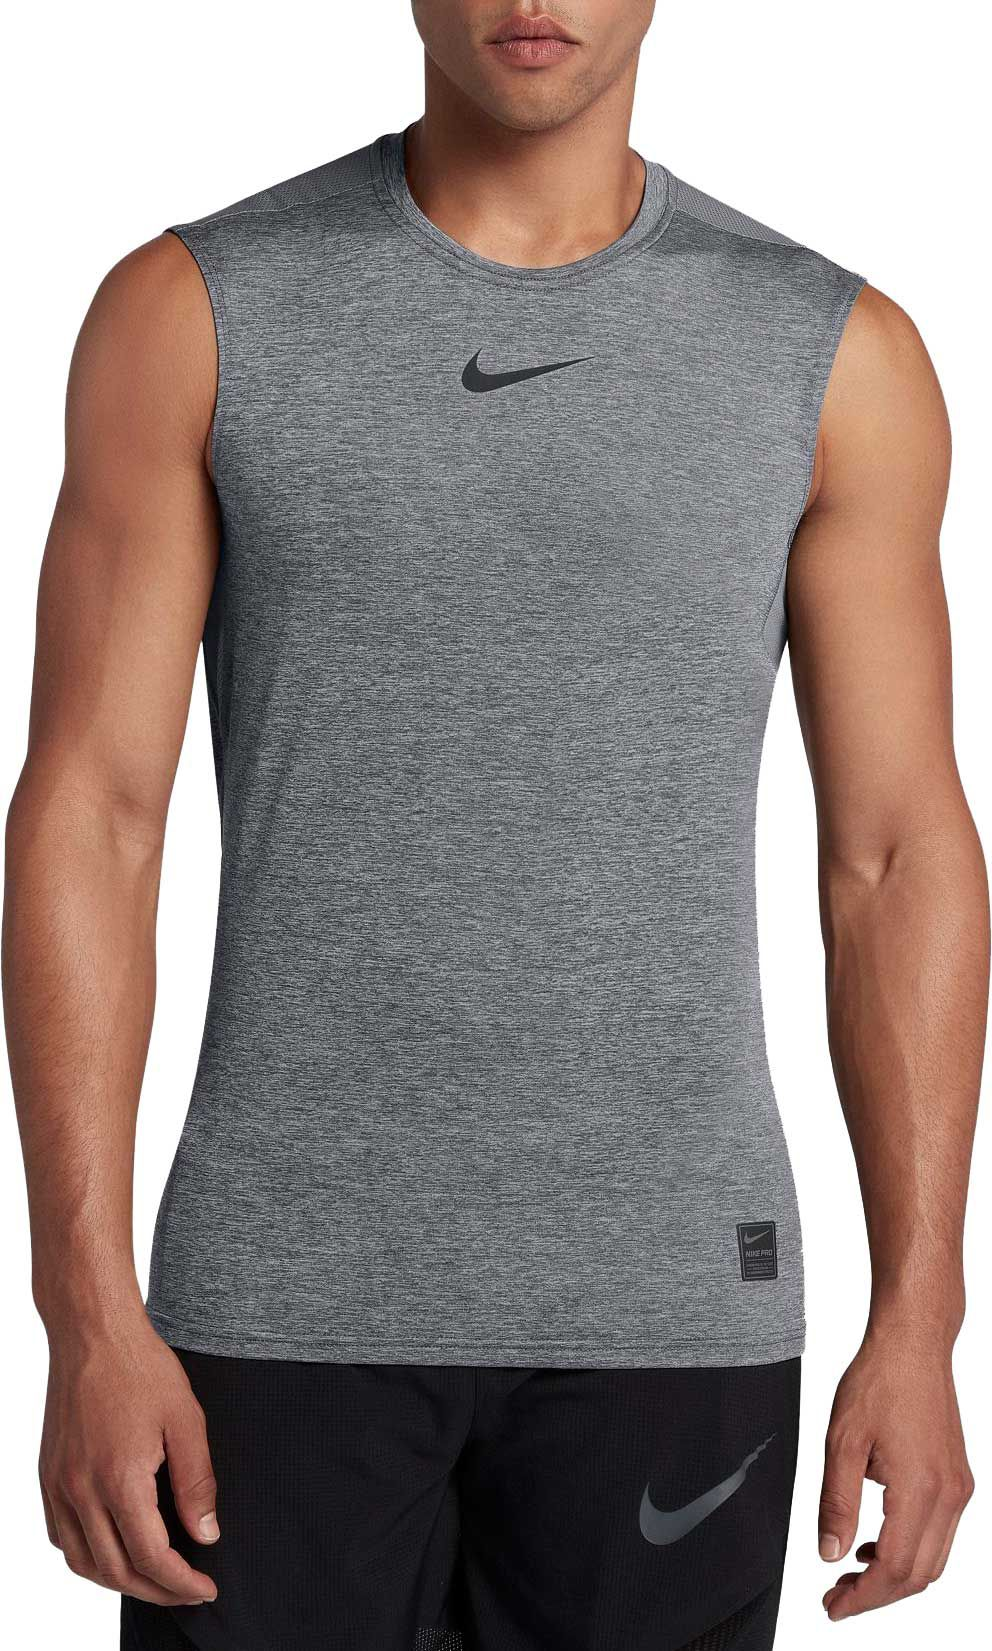 26f0f5eb3 Nike - Nike Pro Men's Fitted Sleeveless Shirt - Walmart.com